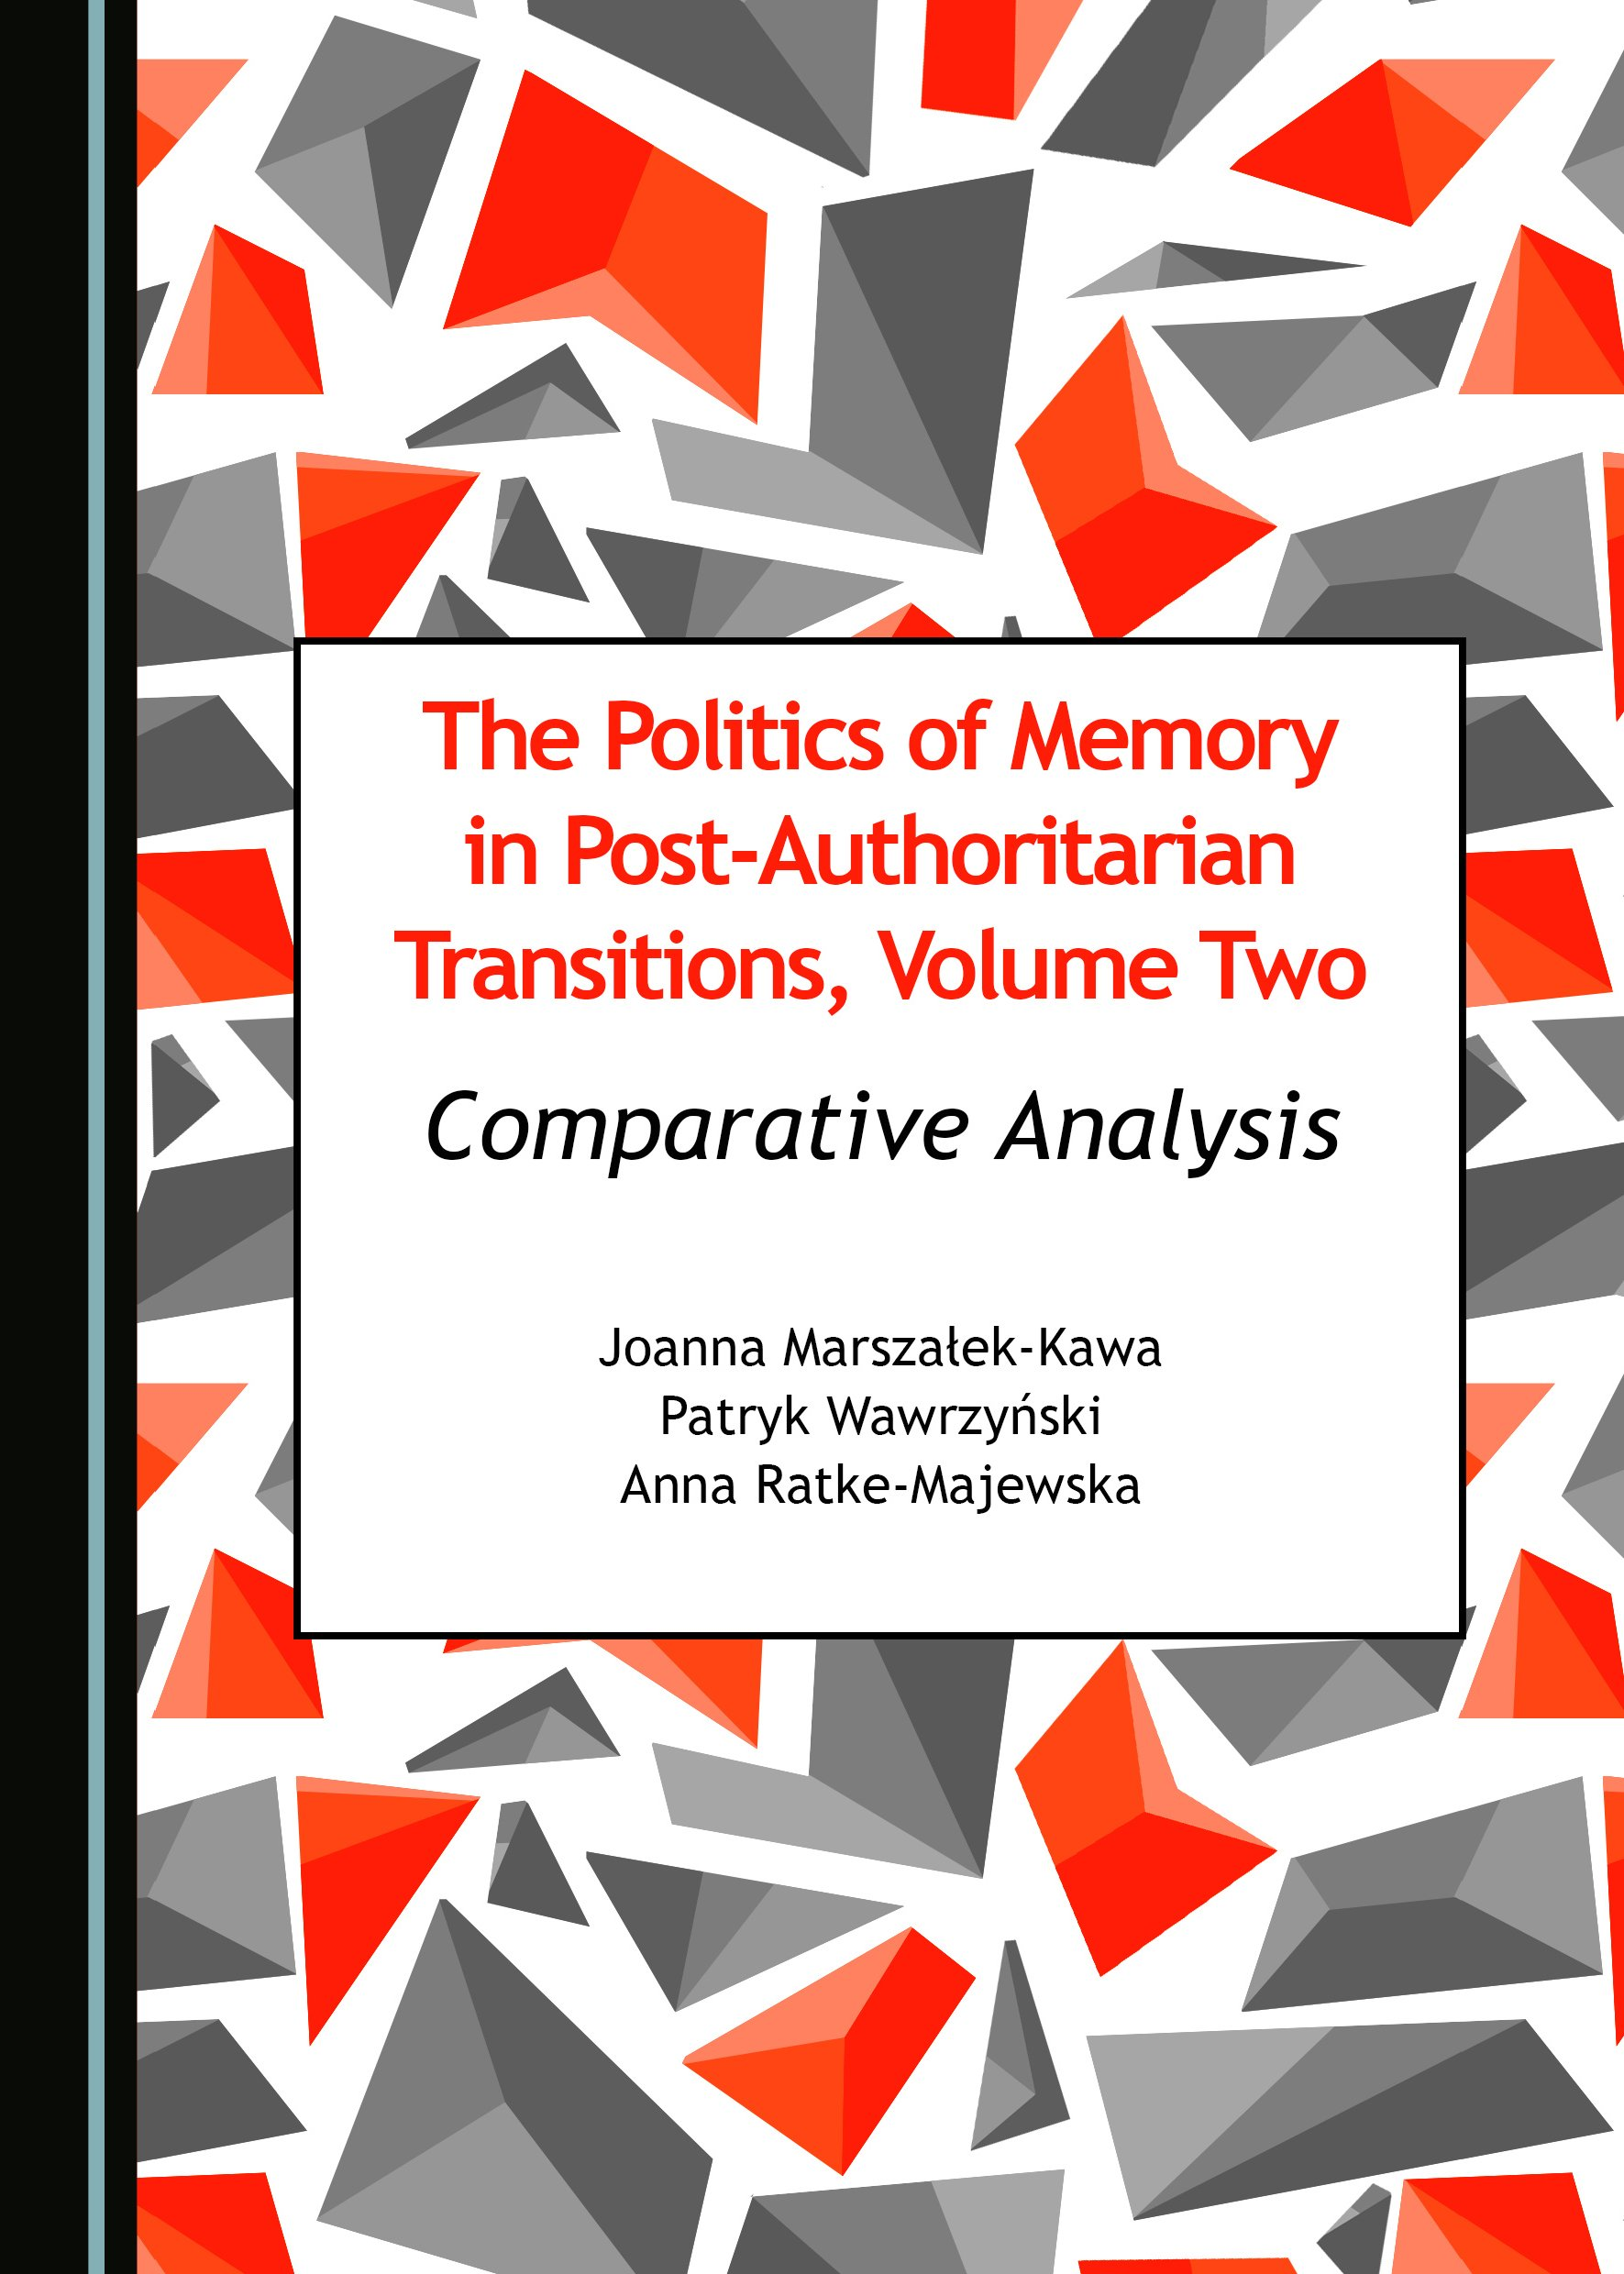 The Politics of Memory in Post-Authoritarian Transitions, Volume Two: Comparative Analysis